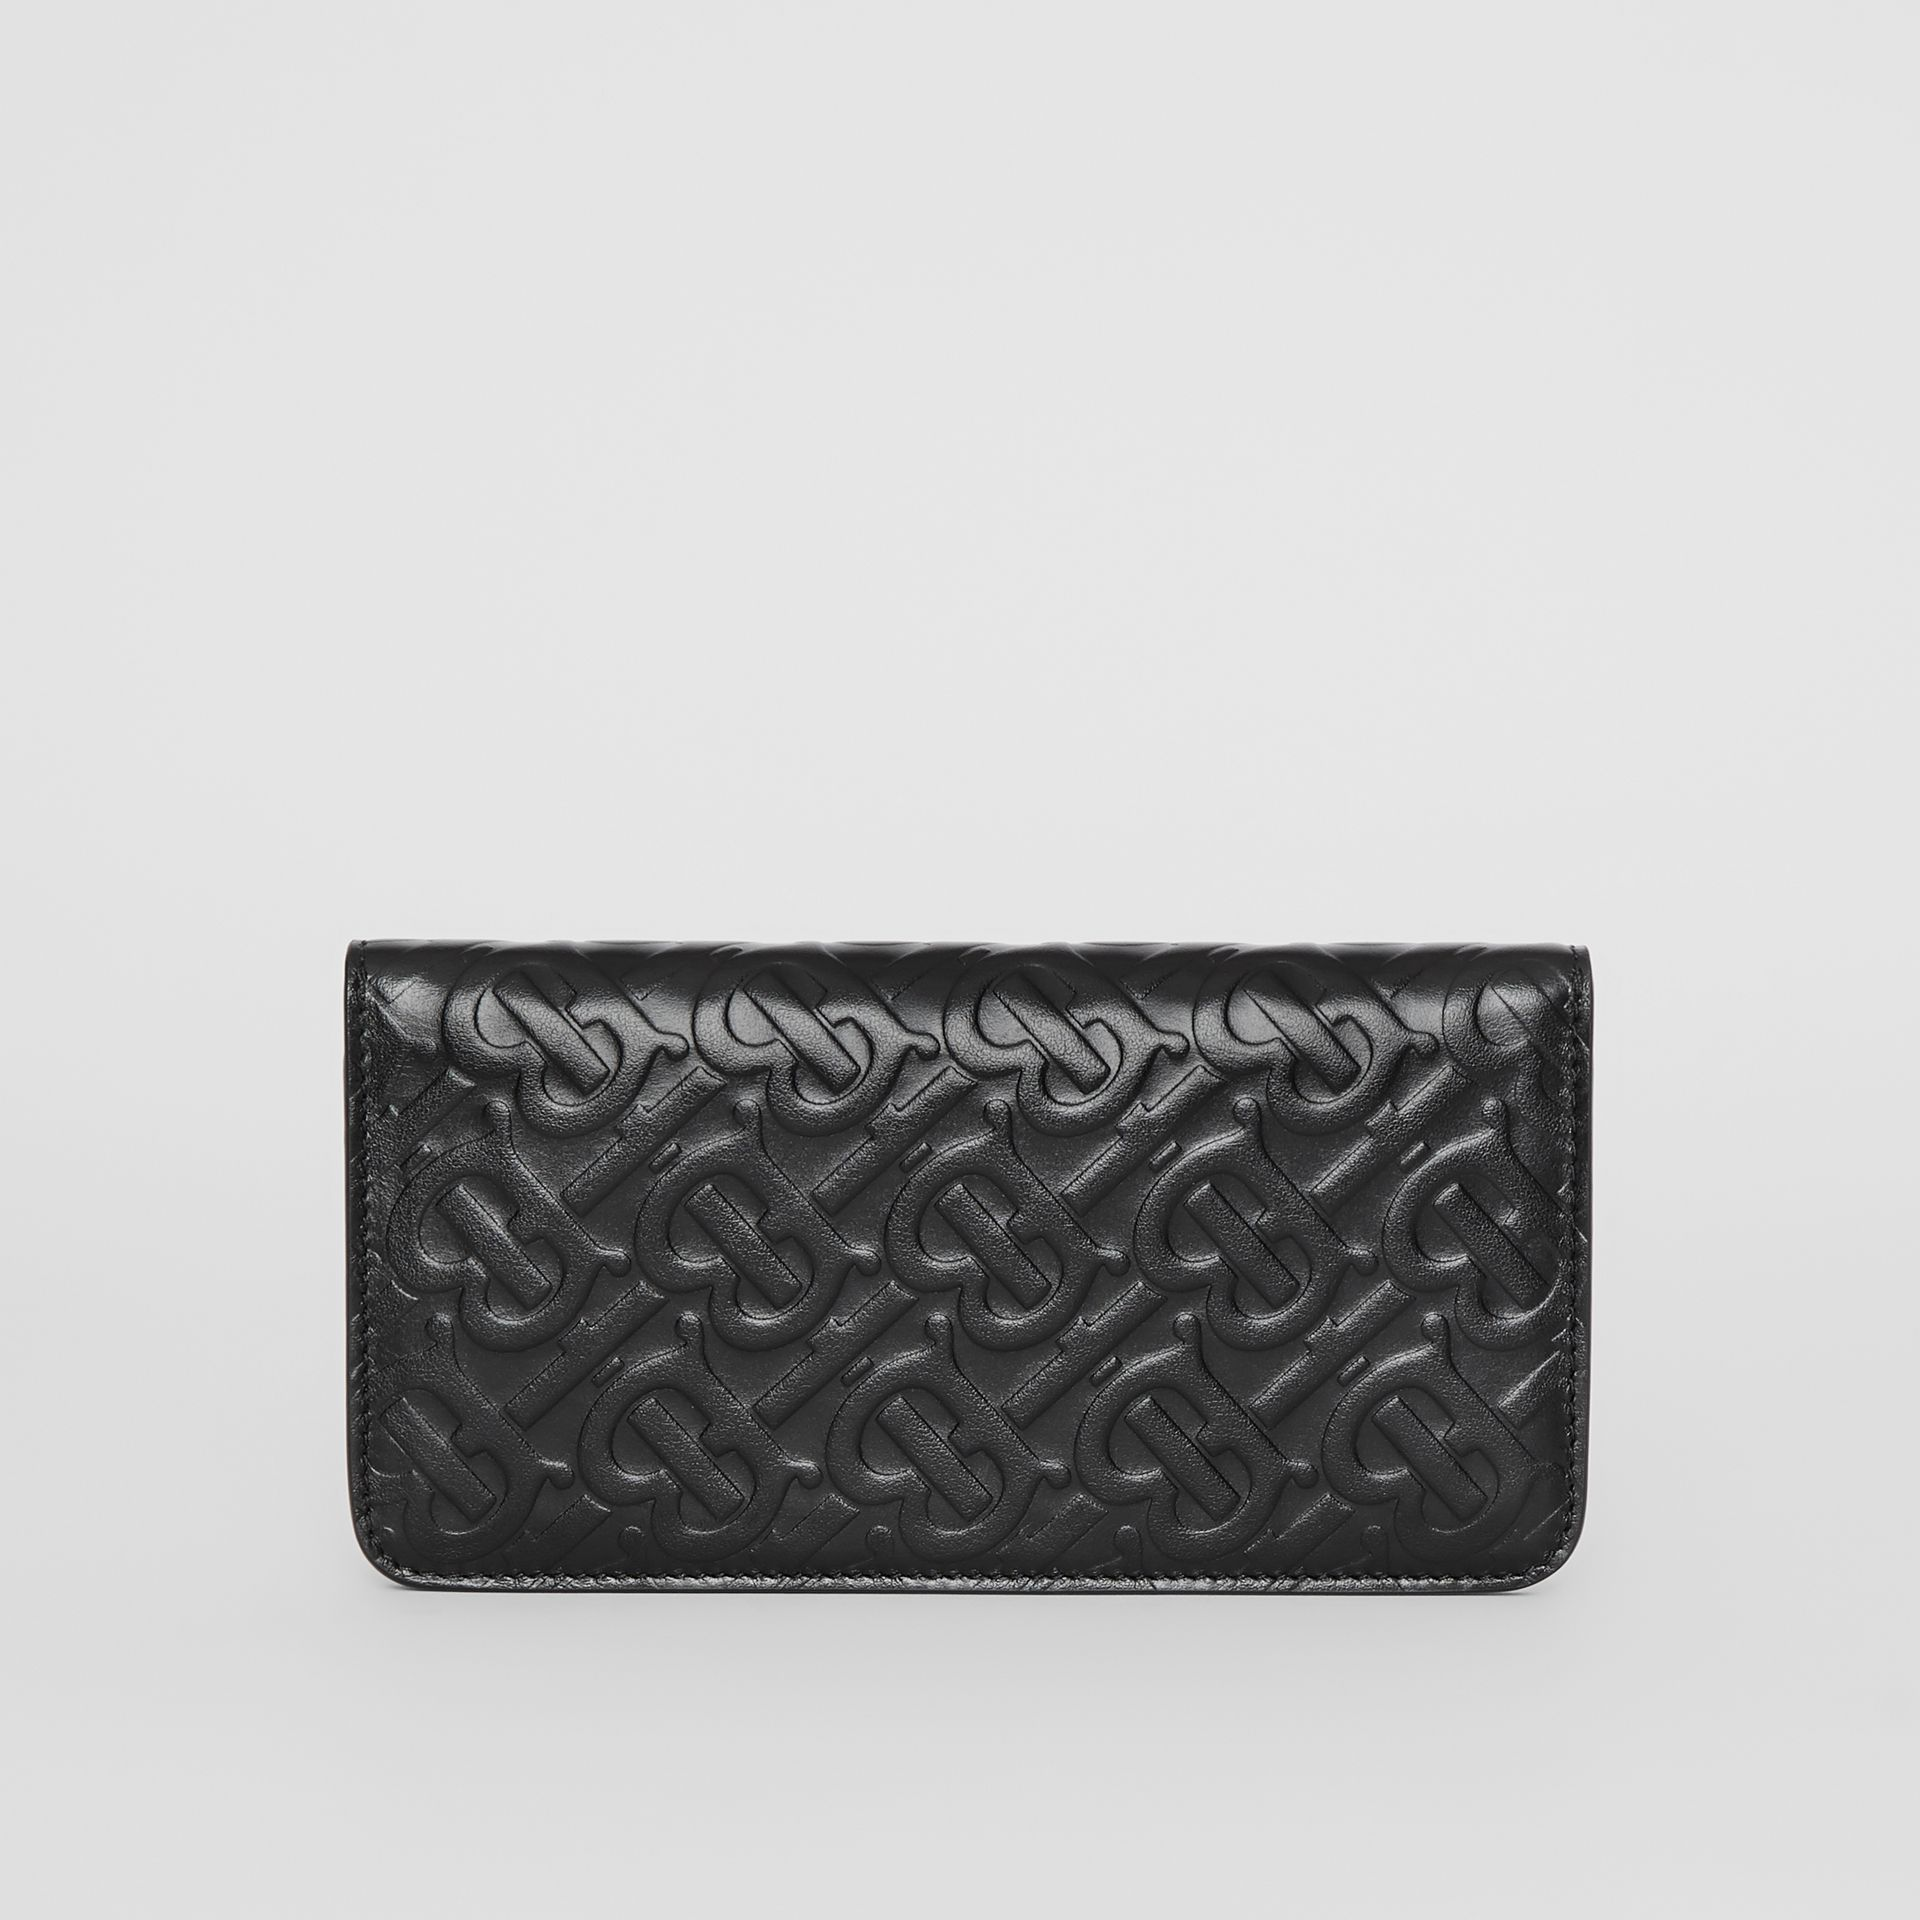 Monogram Leather Phone Wallet in Black - Women | Burberry - gallery image 4